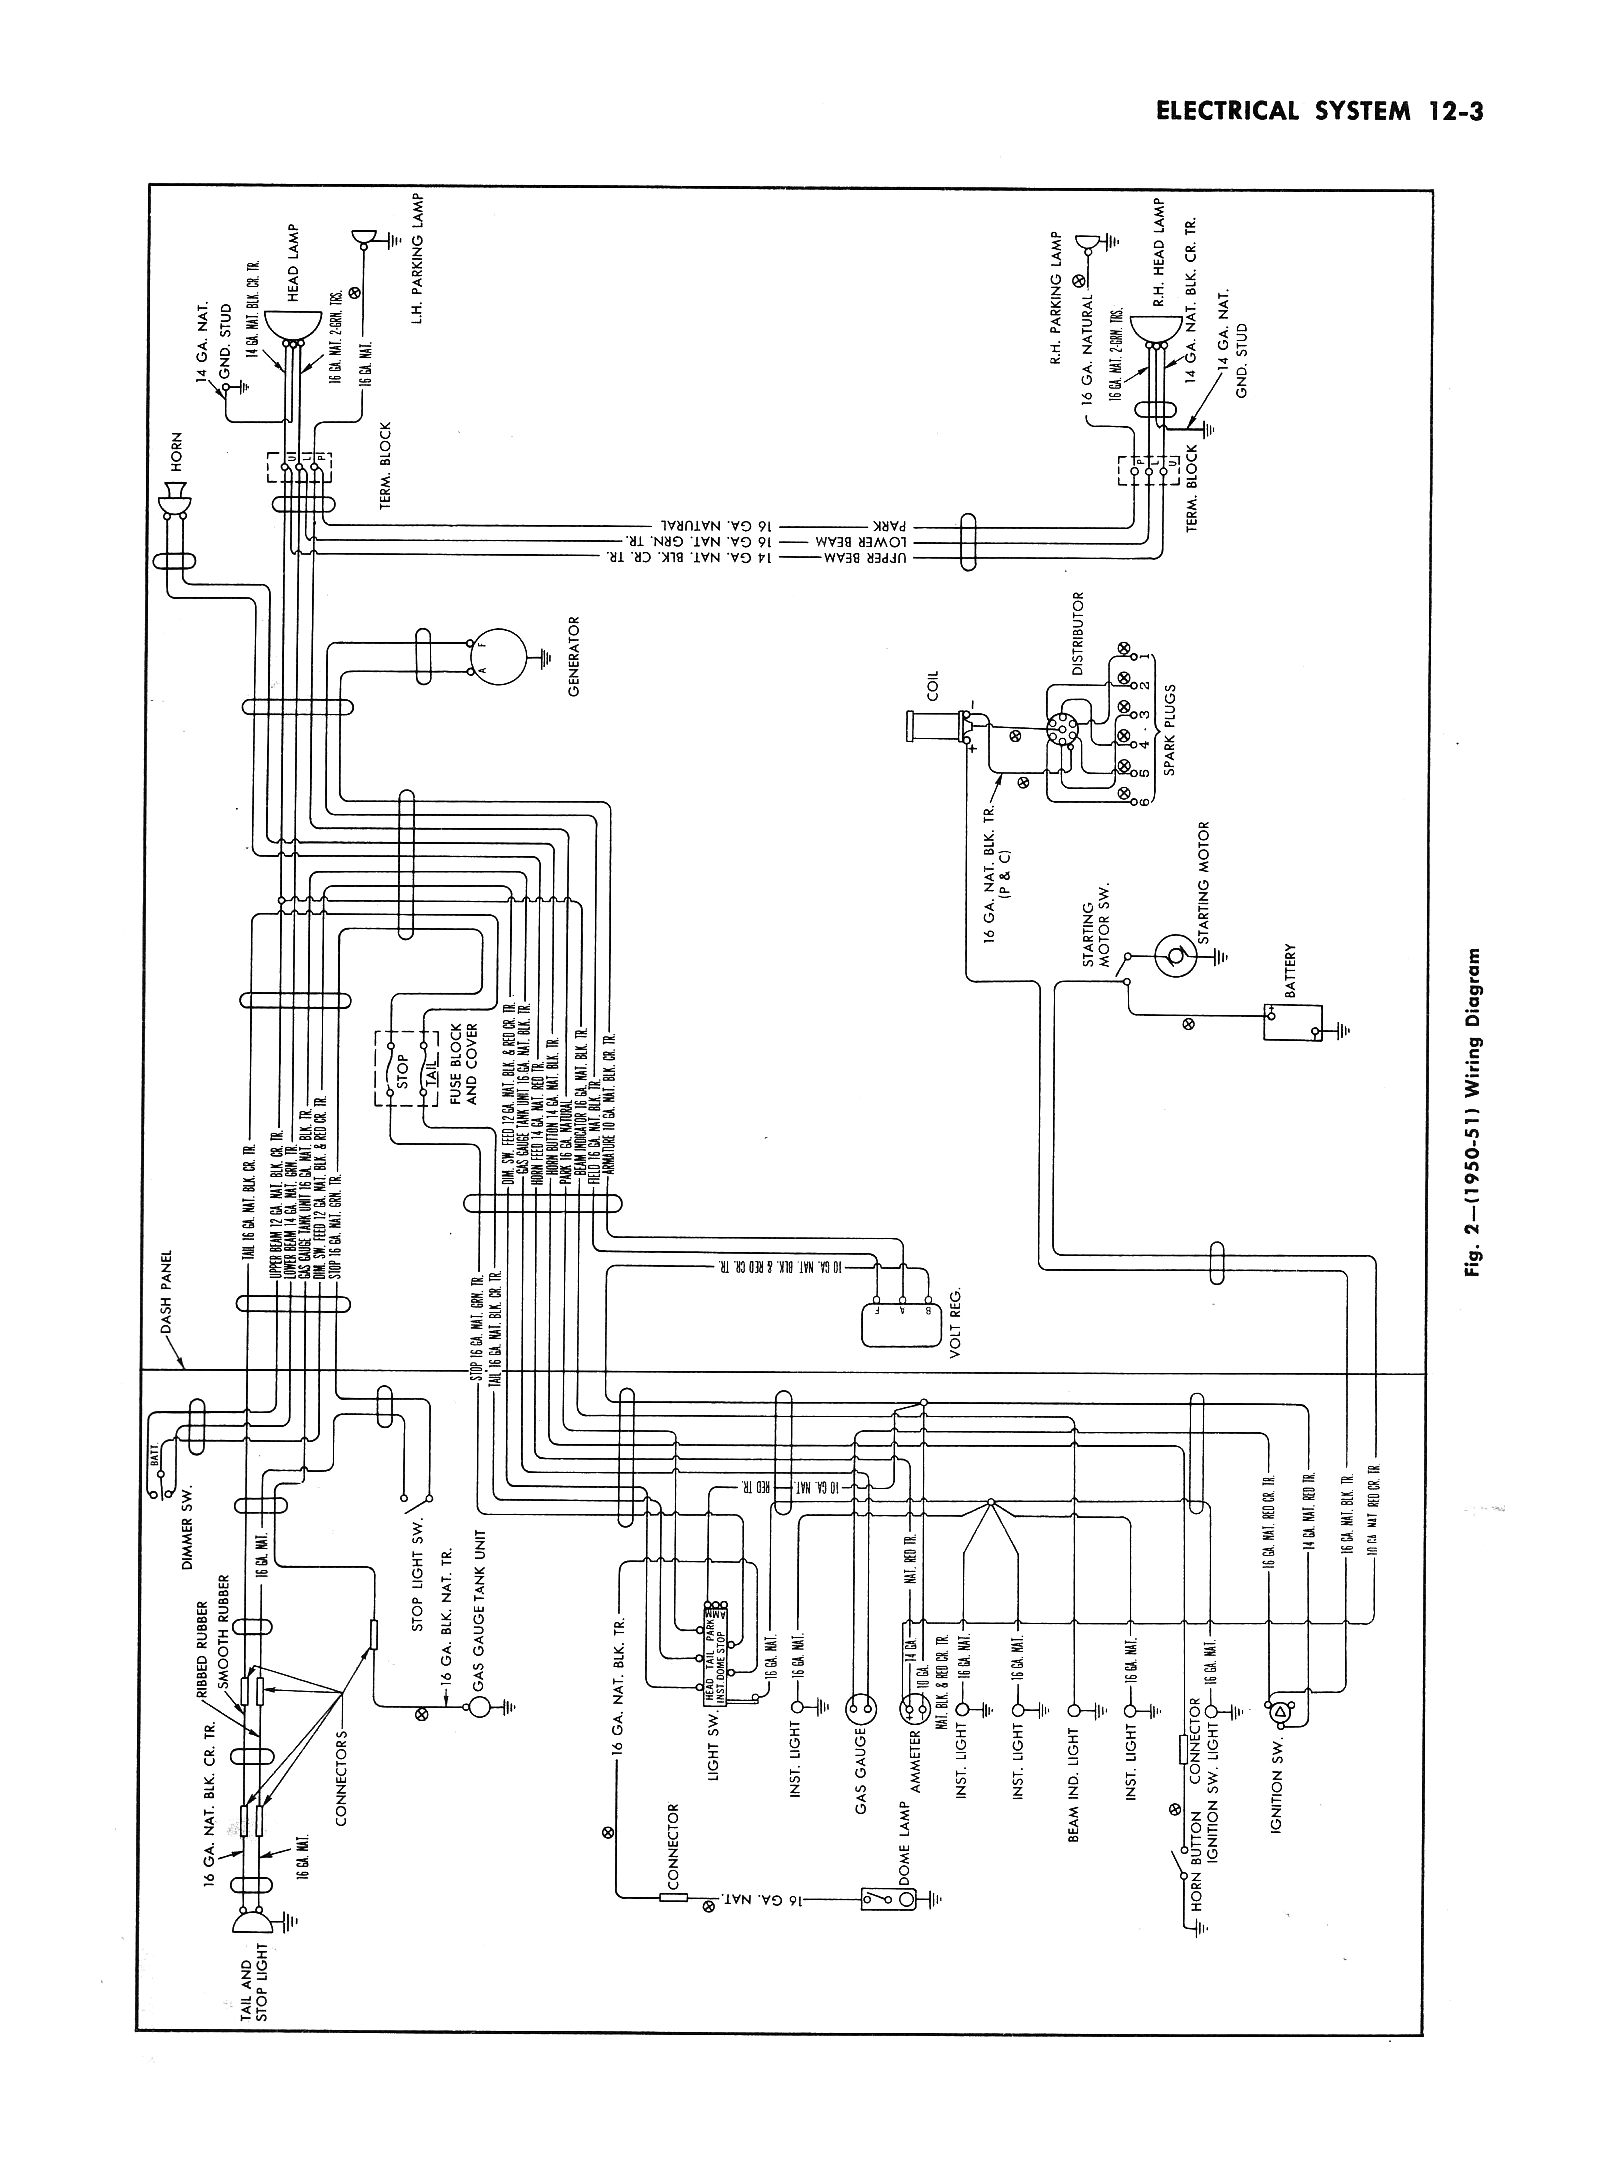 55 chevy wiring wiring librarychevy wiring diagrams 55 chevy wiring diagram  1955 1959 chevy truck wiring